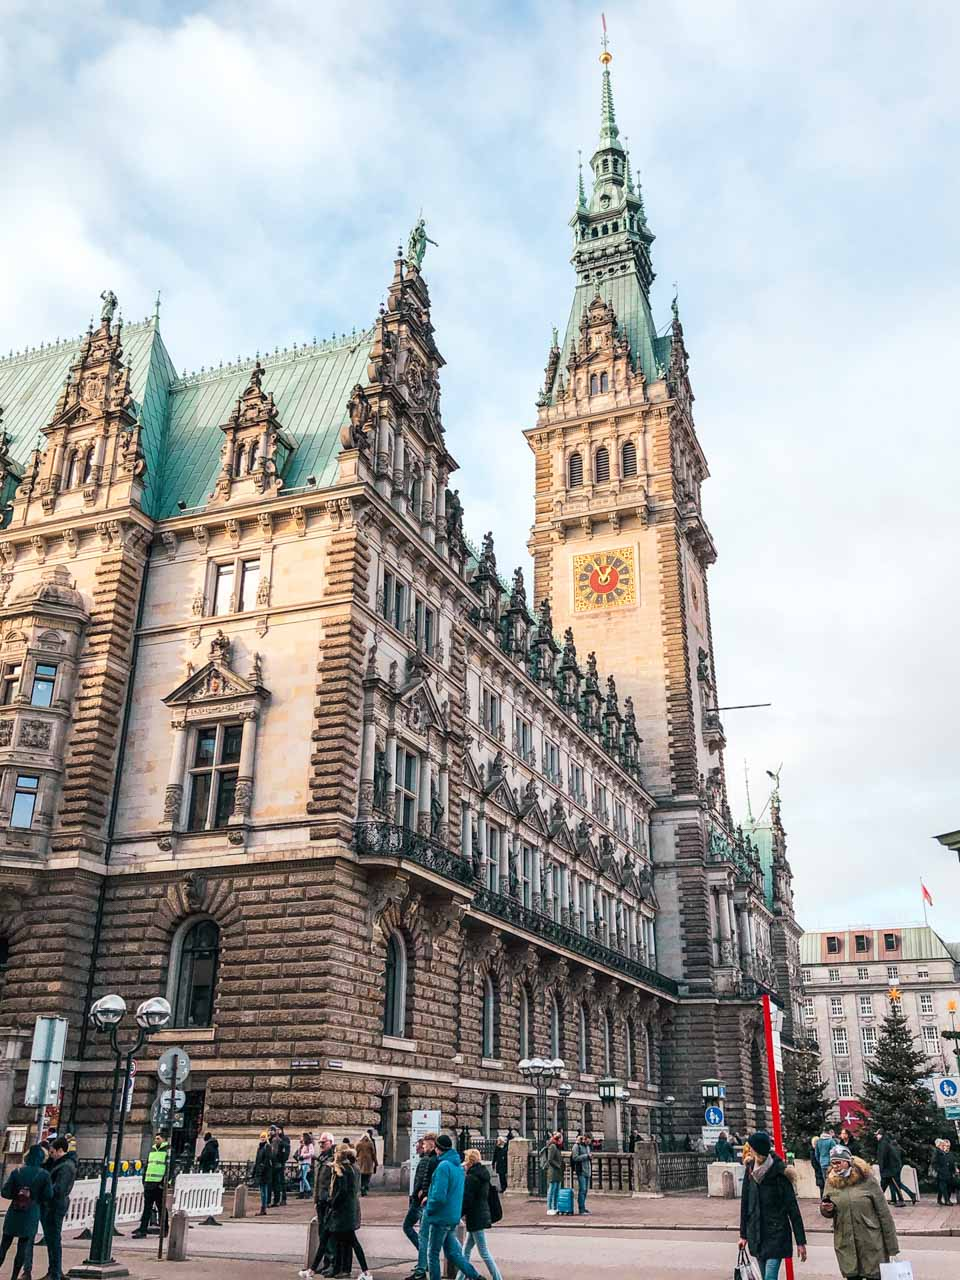 The City Hall building in Hamburg, Germany